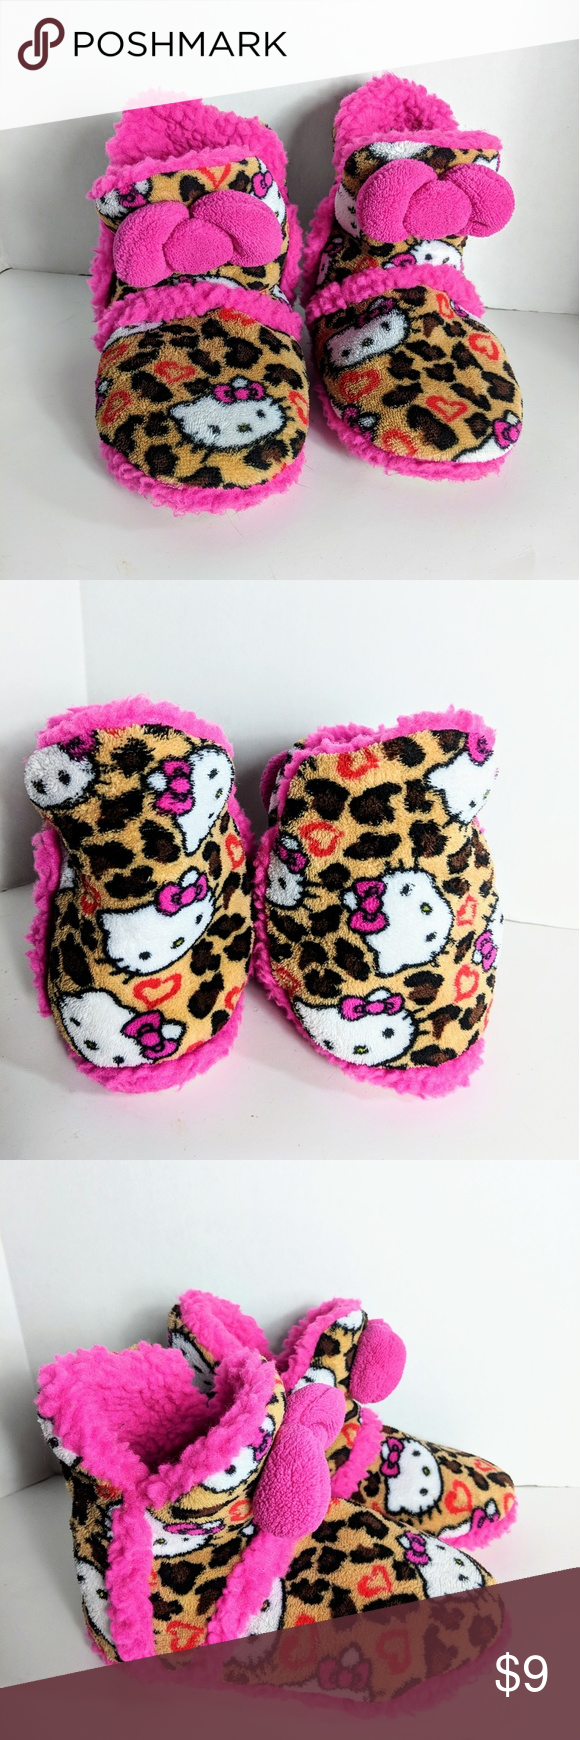 a5ff0caddd01 Girl s Hello Kitty Booties Sleepers 13 1 Girls Hello Kitty leopard and pink  trim bootie slippers size 13 1 in good preowned condition. Hello Kitty Shoes  ...